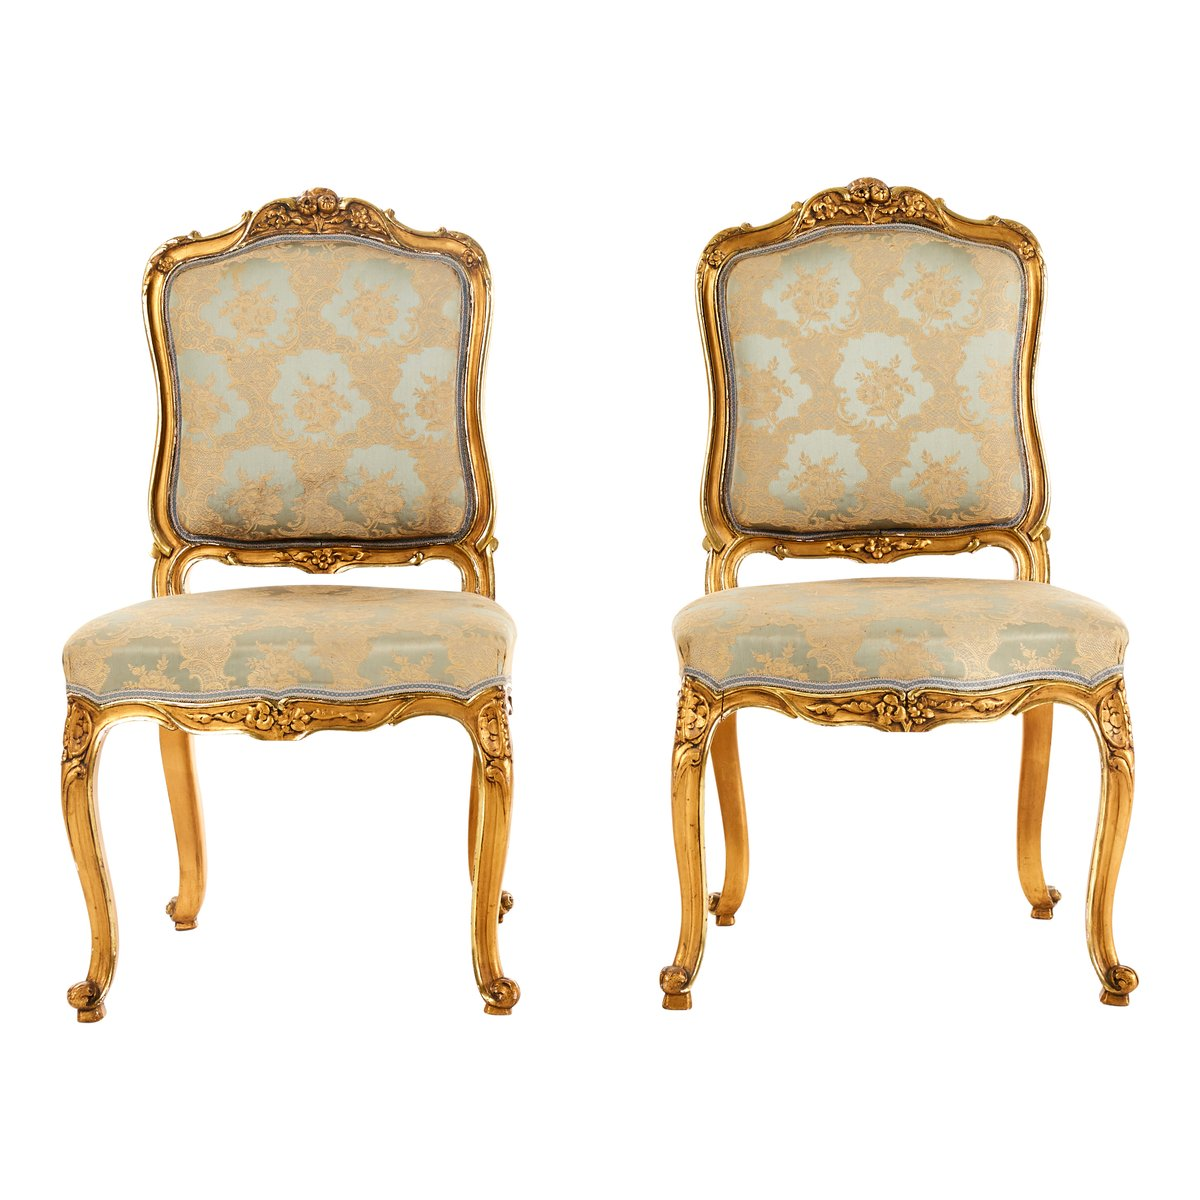 Antique louis xv style chairs set of 2 for sale at pamono - Reasons choosing vintage style furniture ...